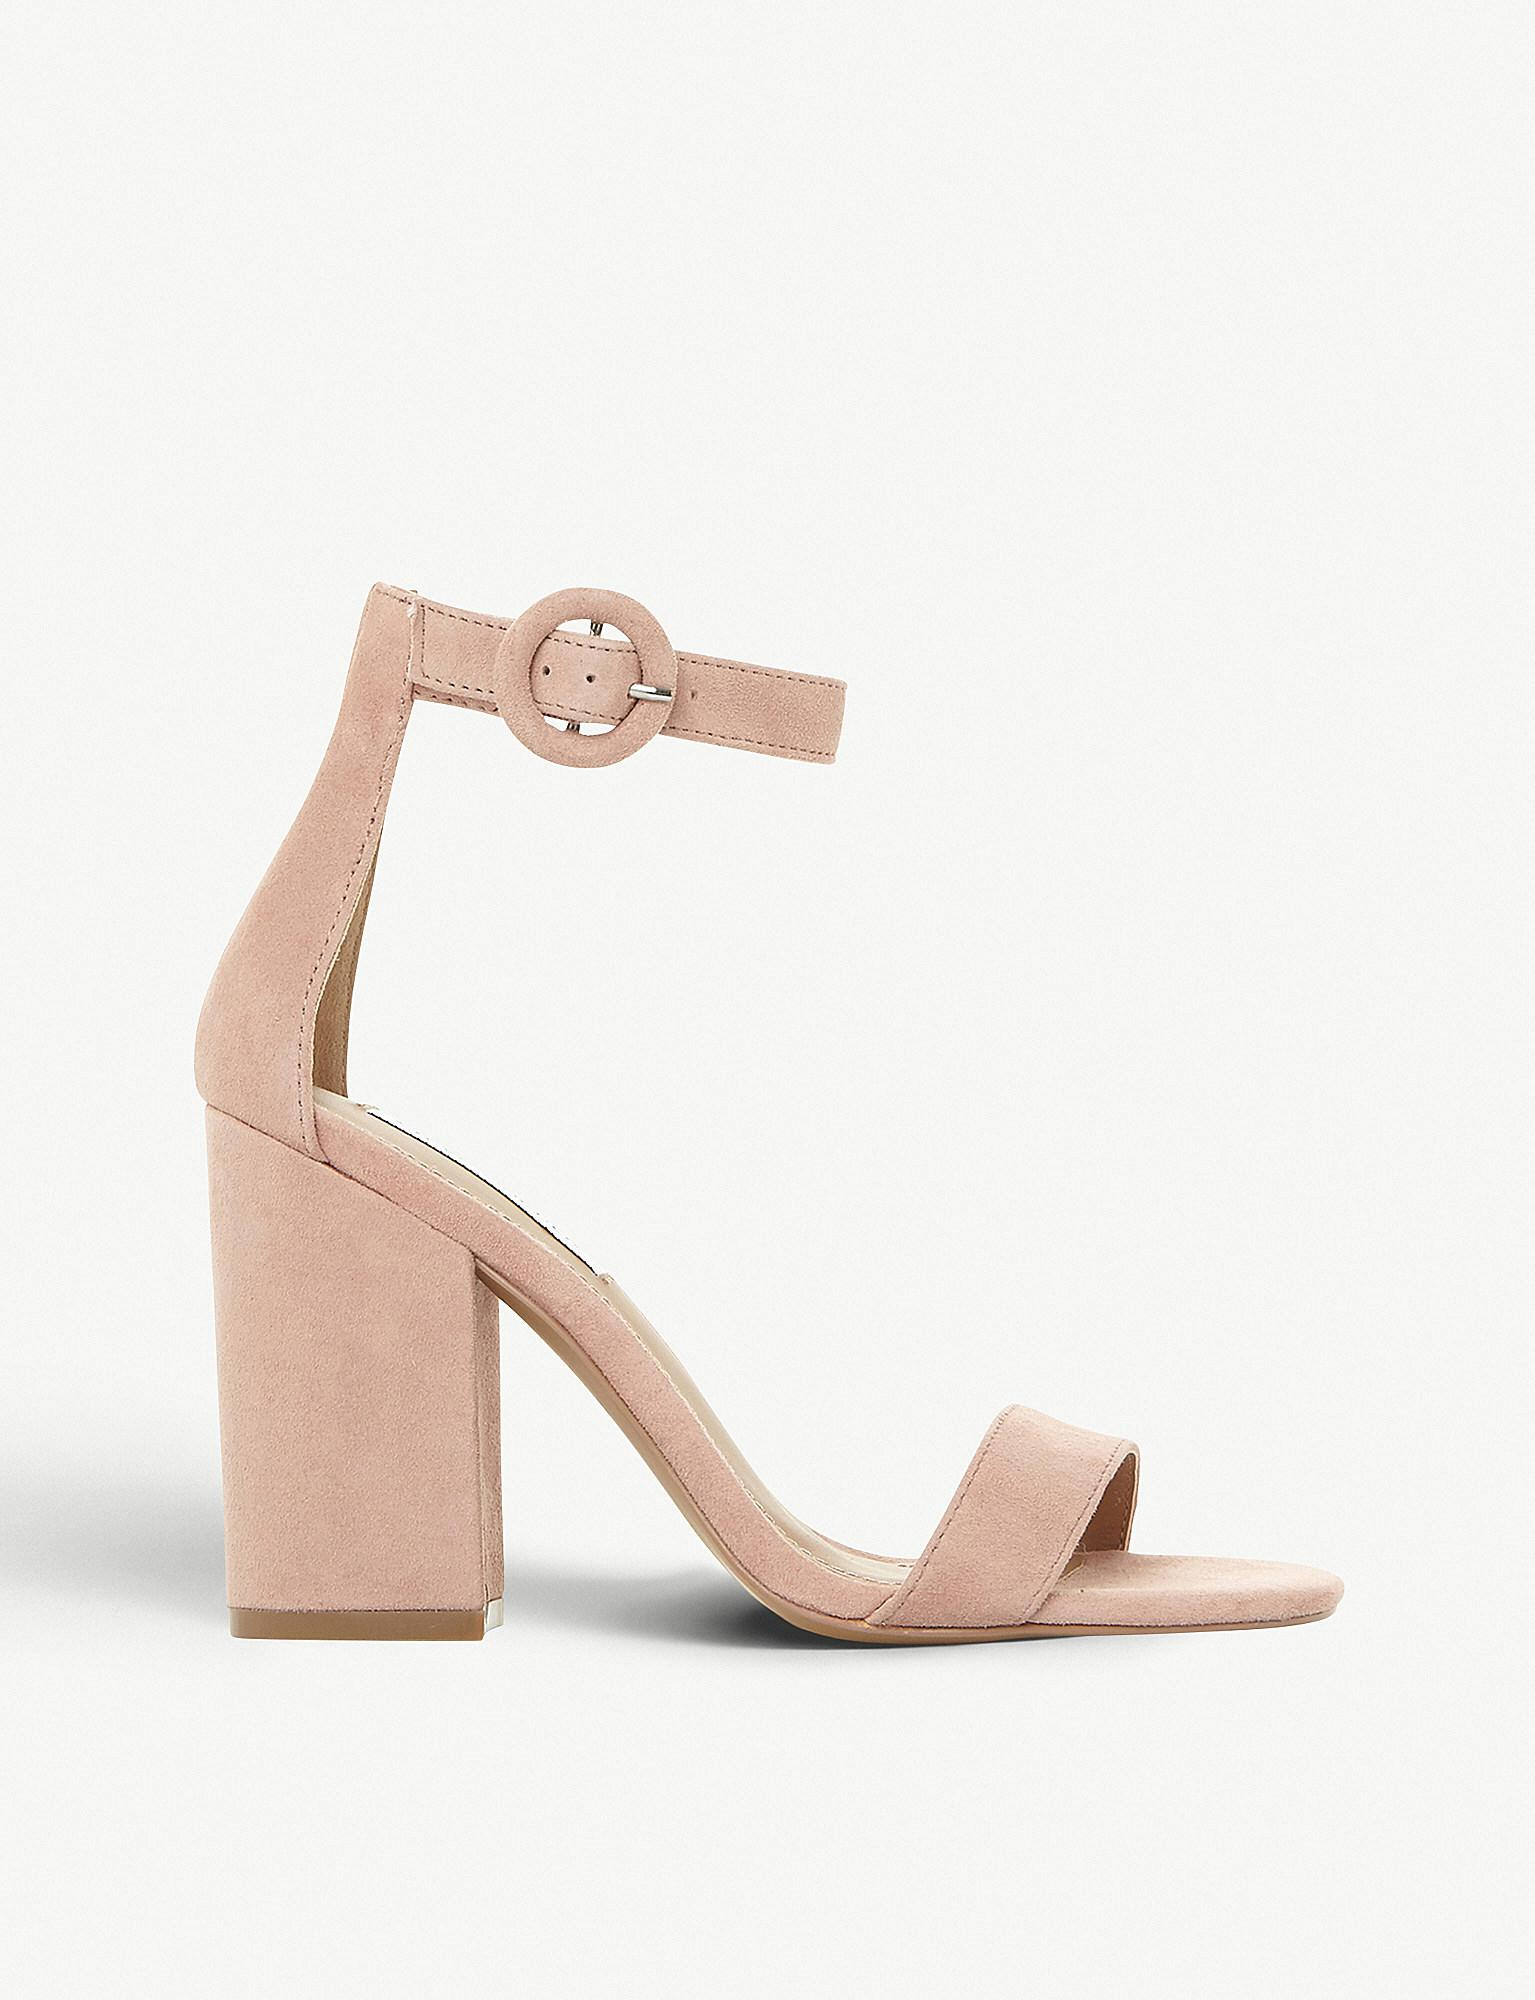 d0381929a00 Lyst - Steve Madden Friday Block Heel Suede Sandals in Natural